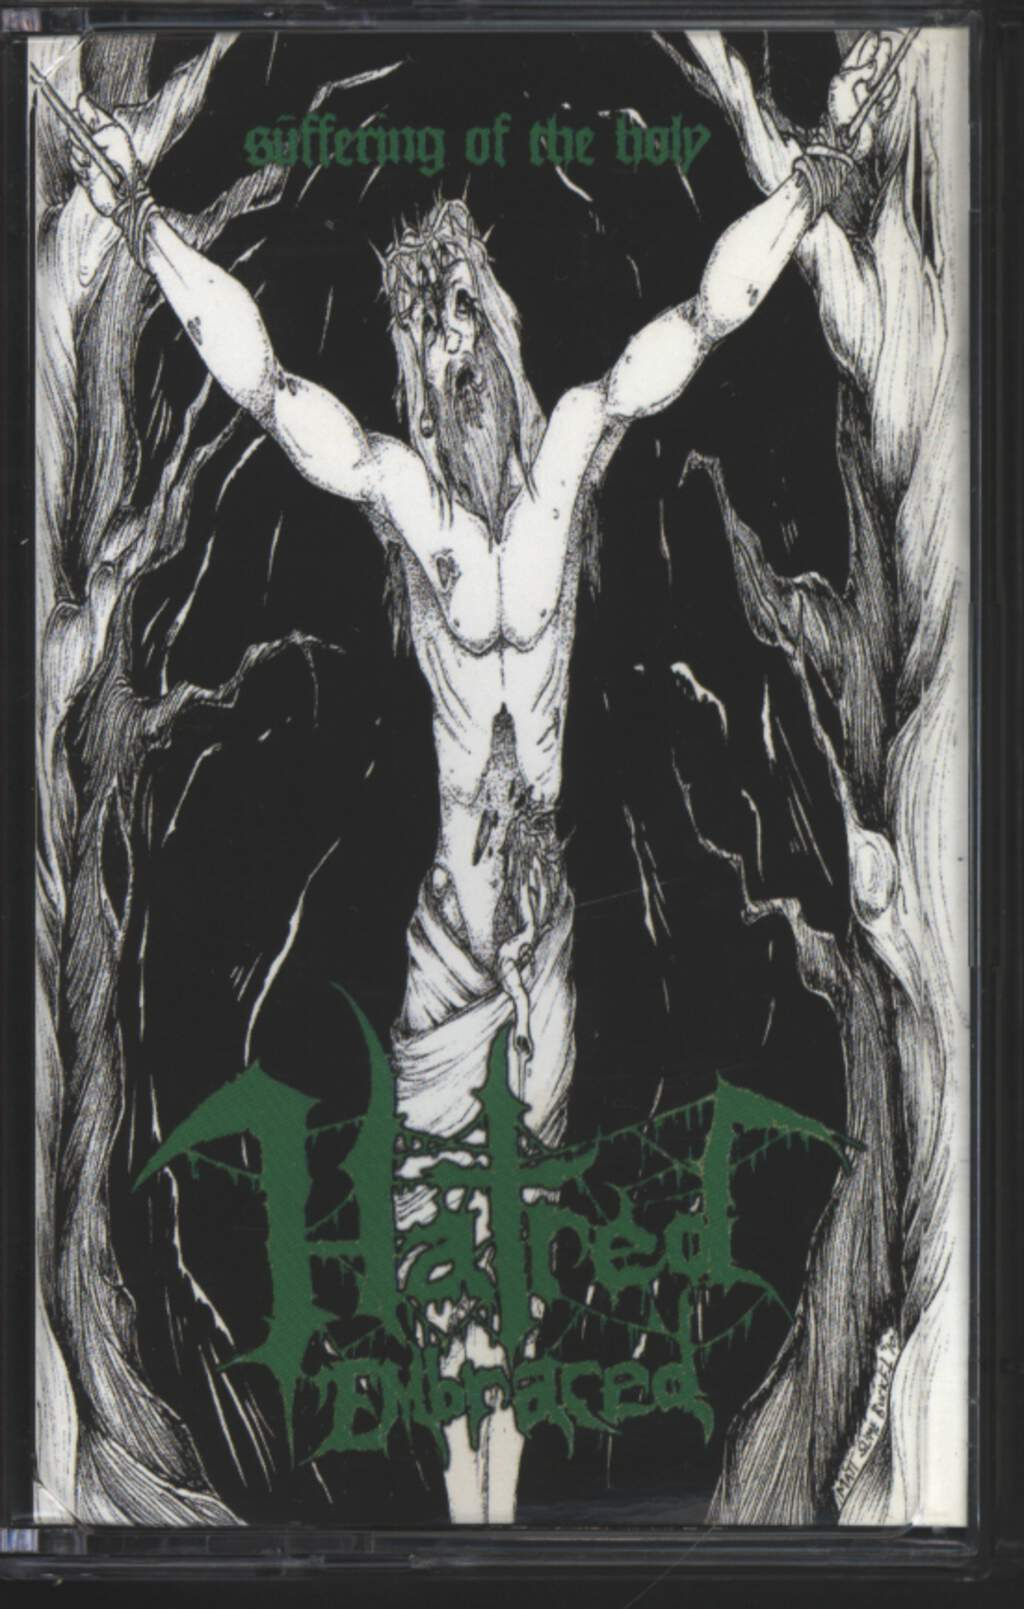 Hatred Embraced: Suffering Of The Holy, Compact Cassette